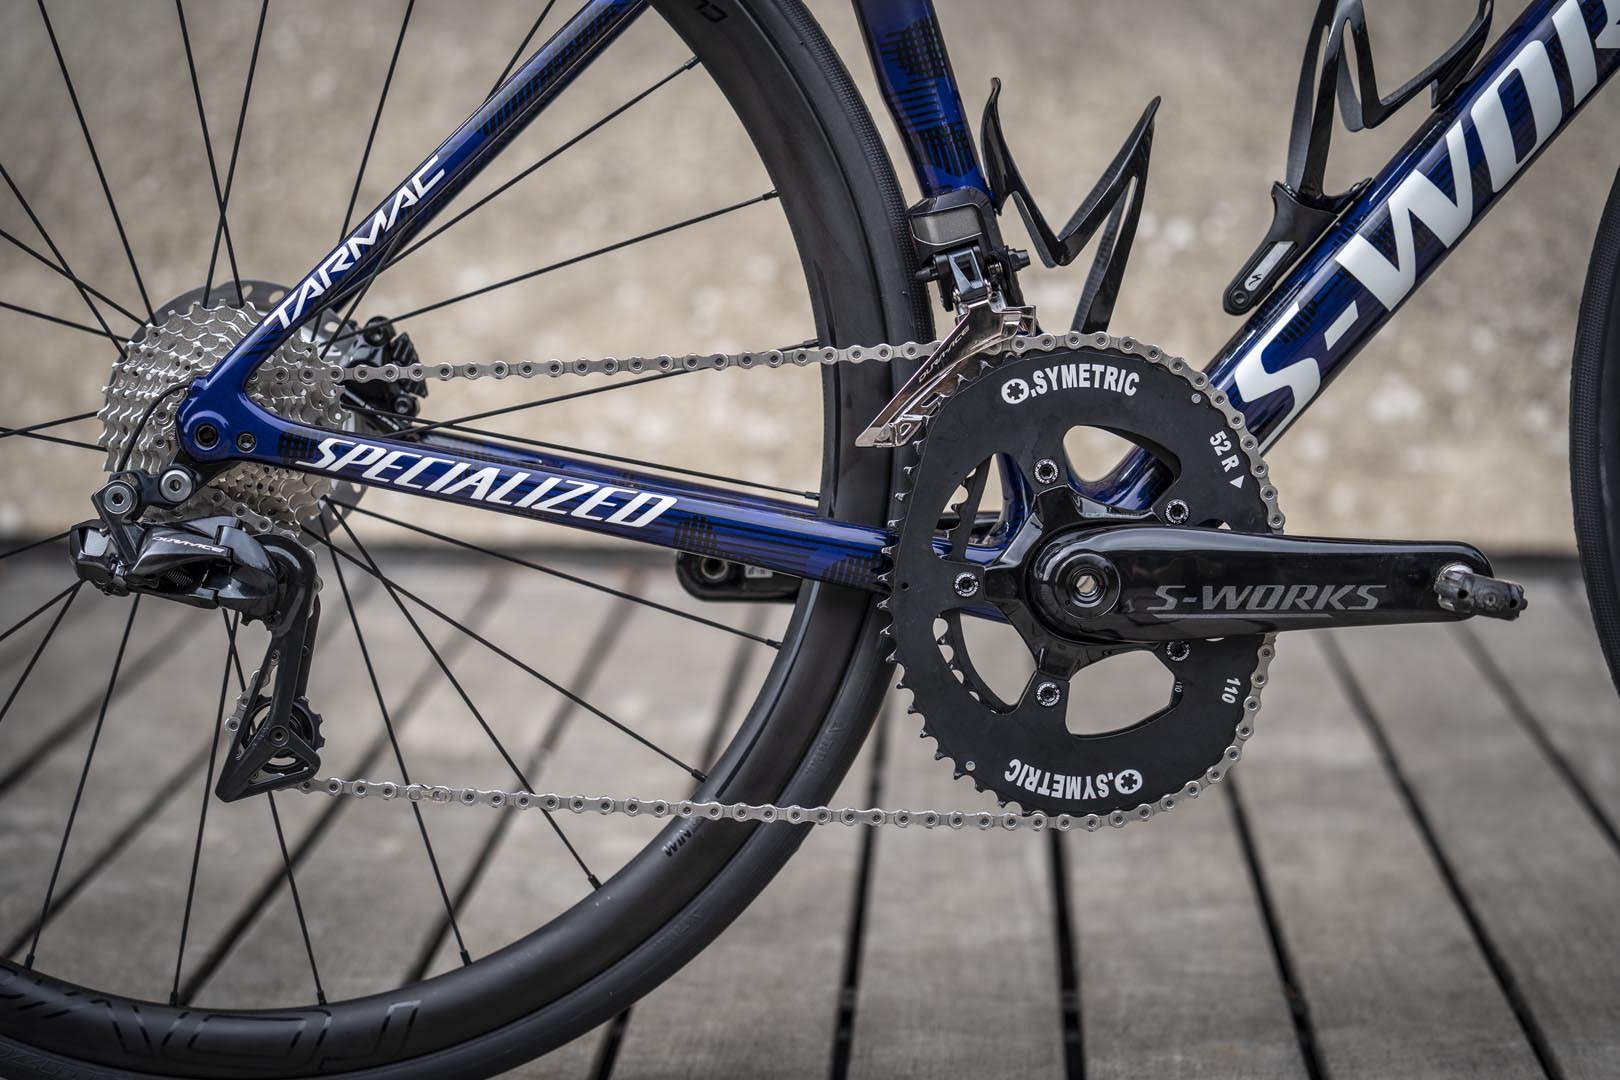 pédalier osymetric power cranck The WolfPack et specialized sworks tamarc disc julian alaphilippe